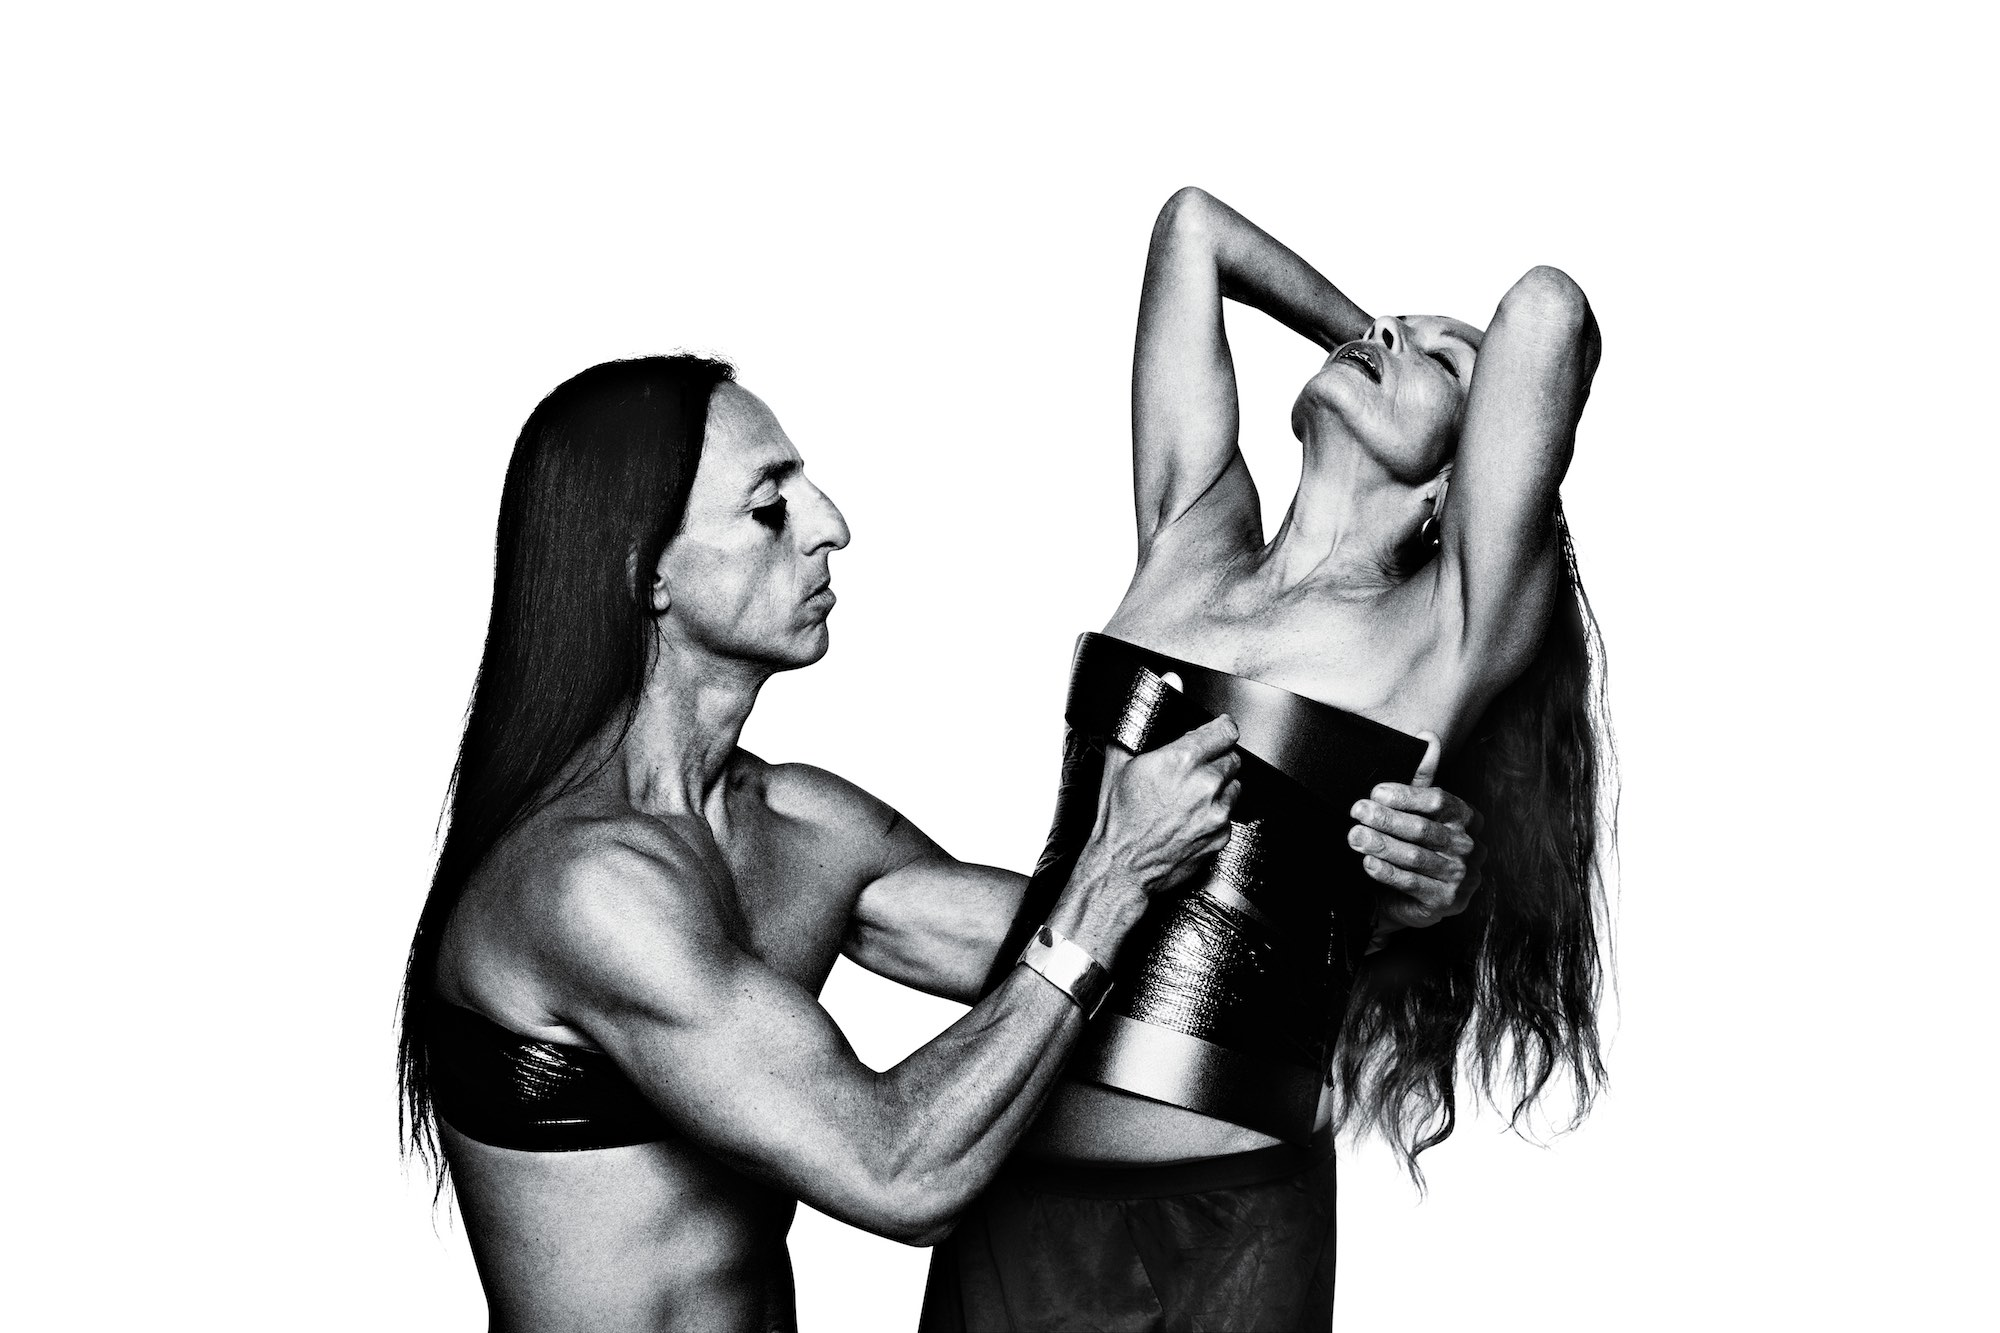 RICK OWENS & MICHELE LAMY | © Rick Owens Photographed by Danielle Levitt by Rick Owens, Rizzoli New York, 2019